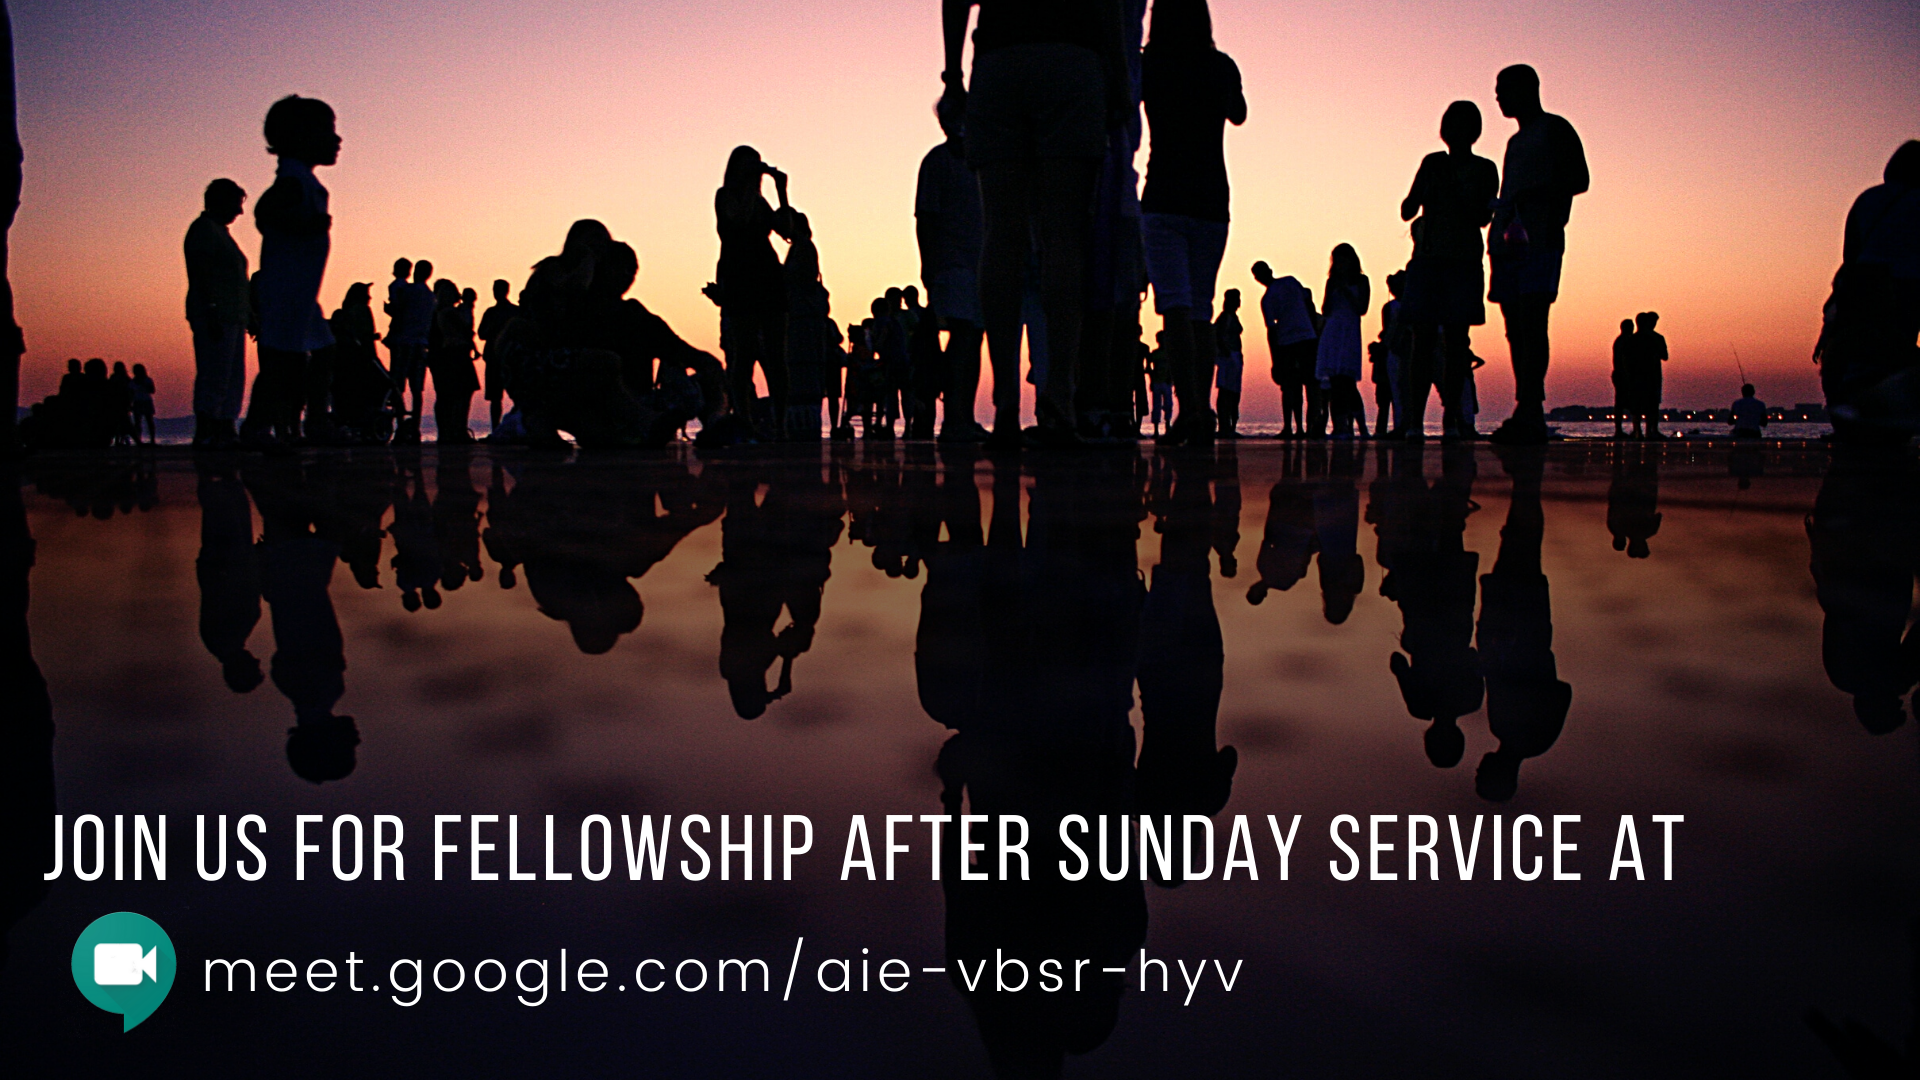 Join us now for fellowship